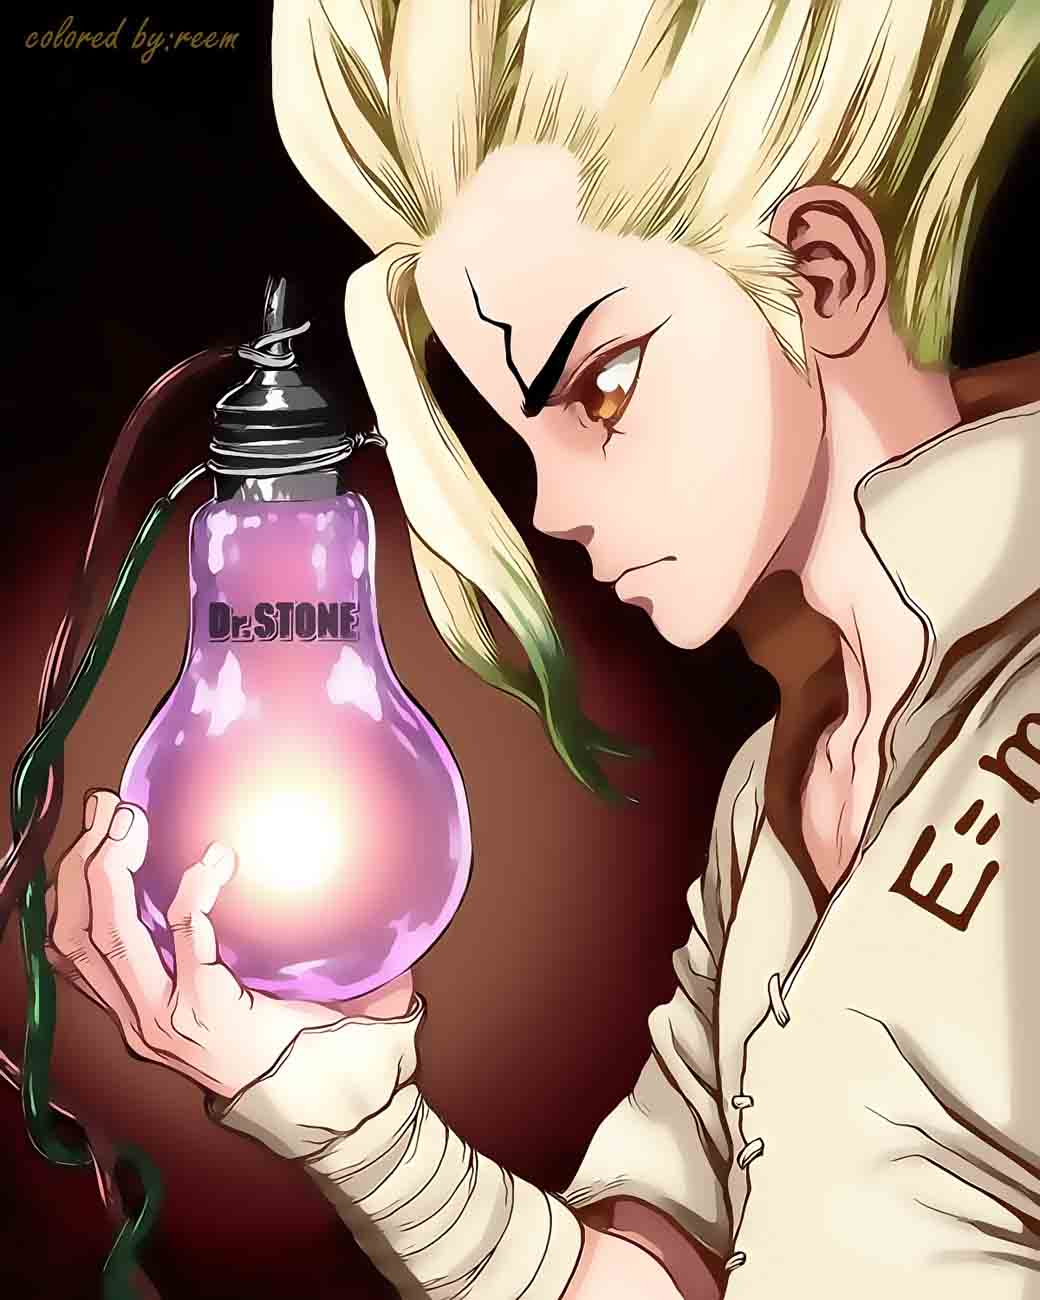 Dr. Stone : Chapter 34 - Village Games of Schemes image 002